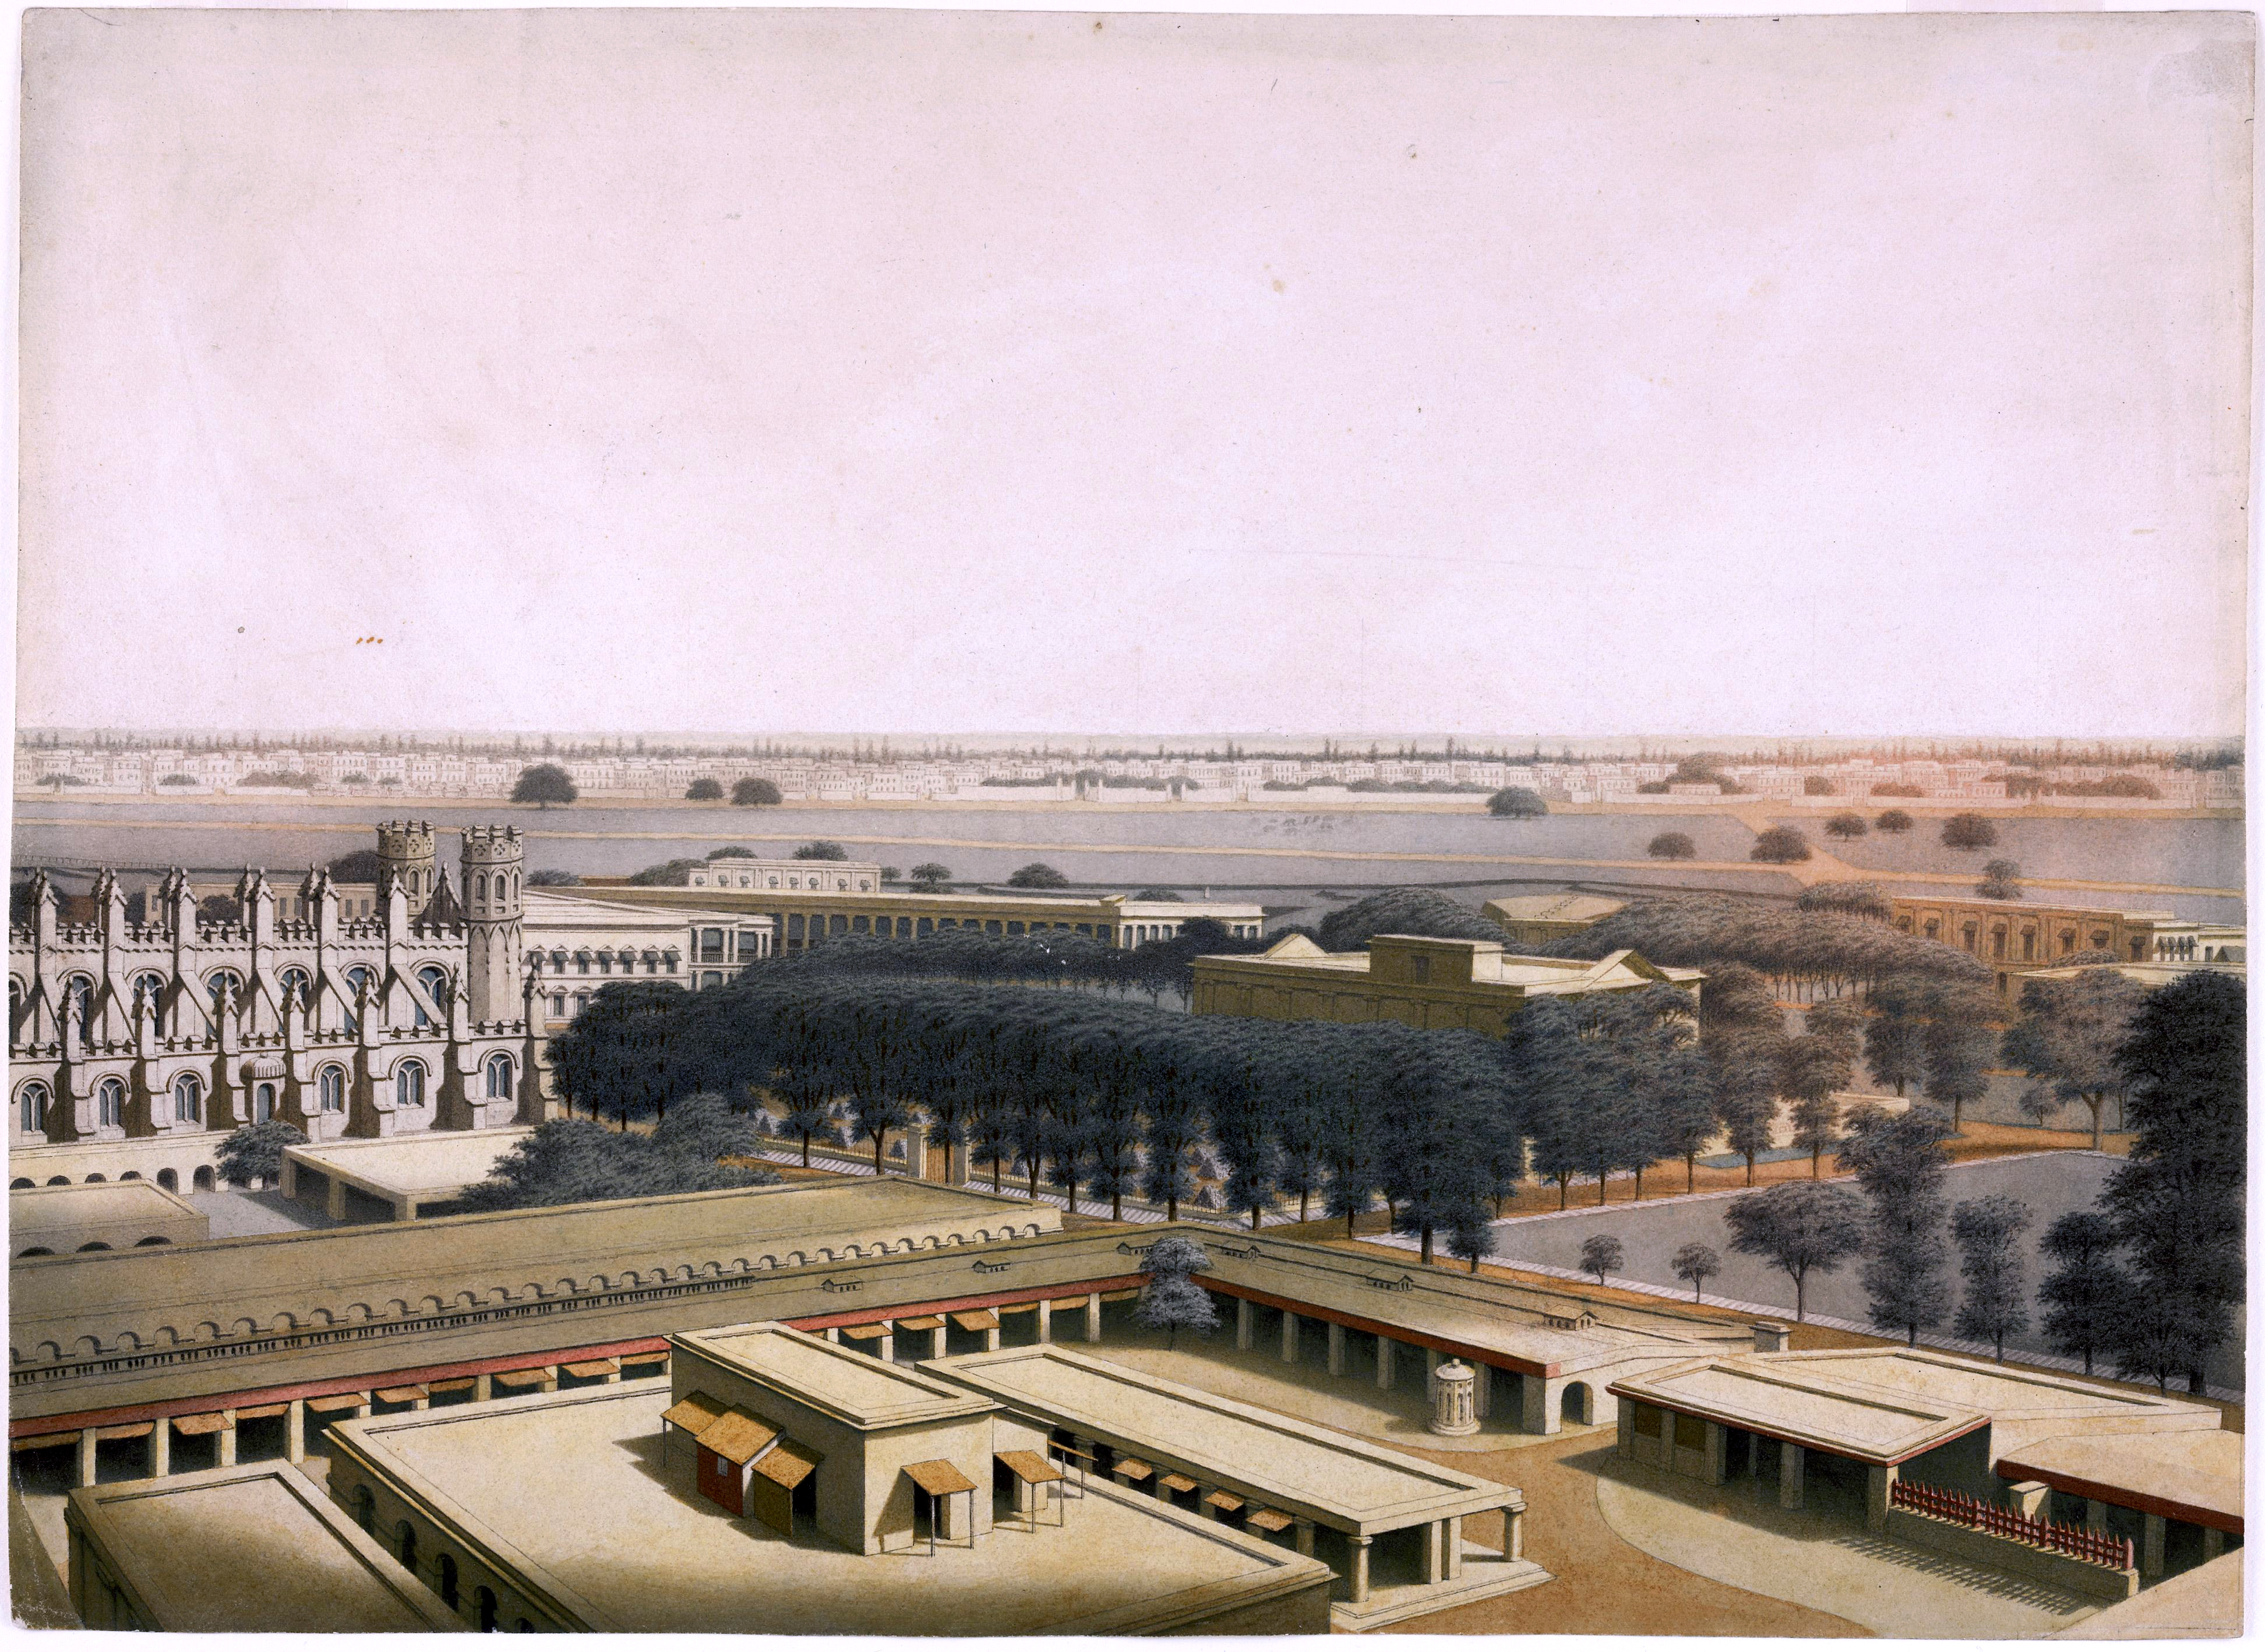 A 19th century painting showing several buildings within a compound.